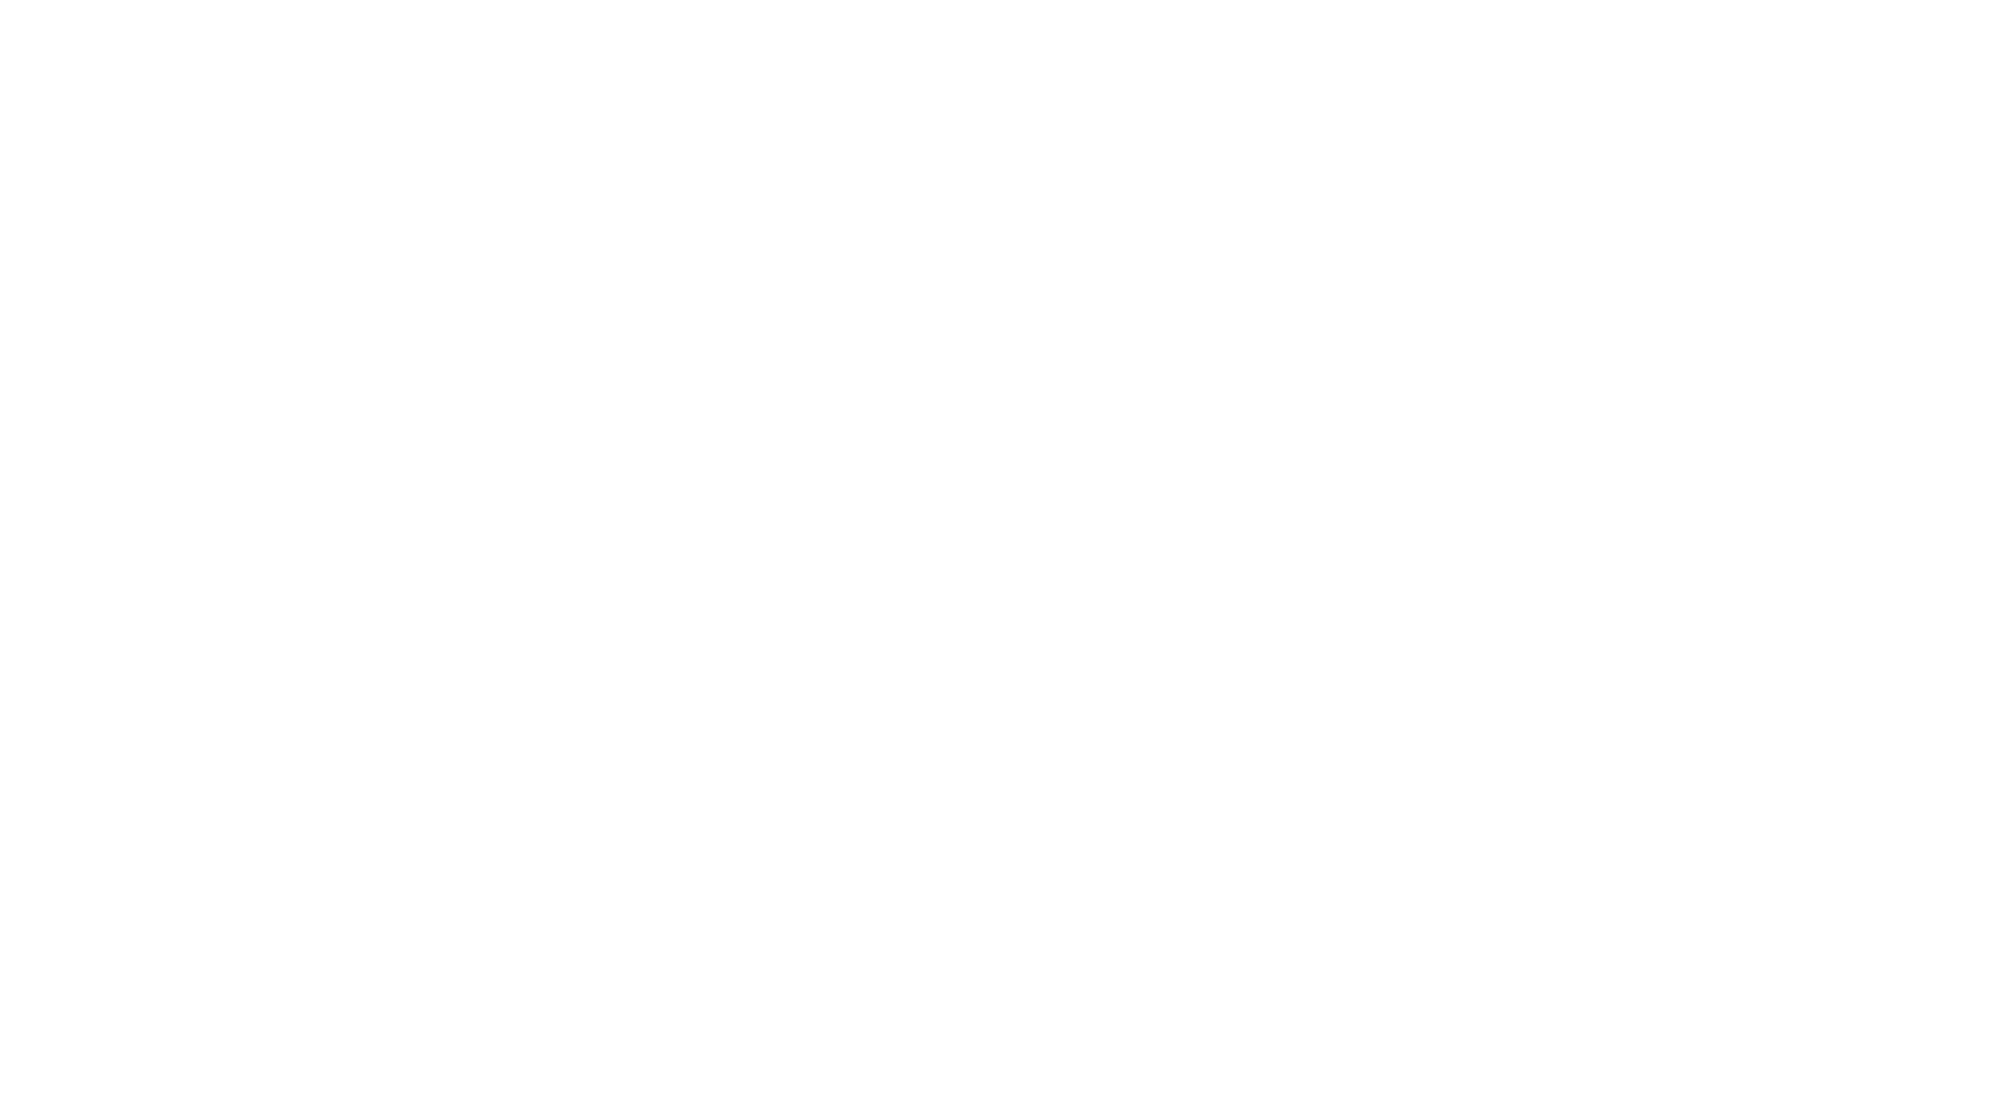 Logo for Starbucks Rewards, the loyalty program of Starbucks.